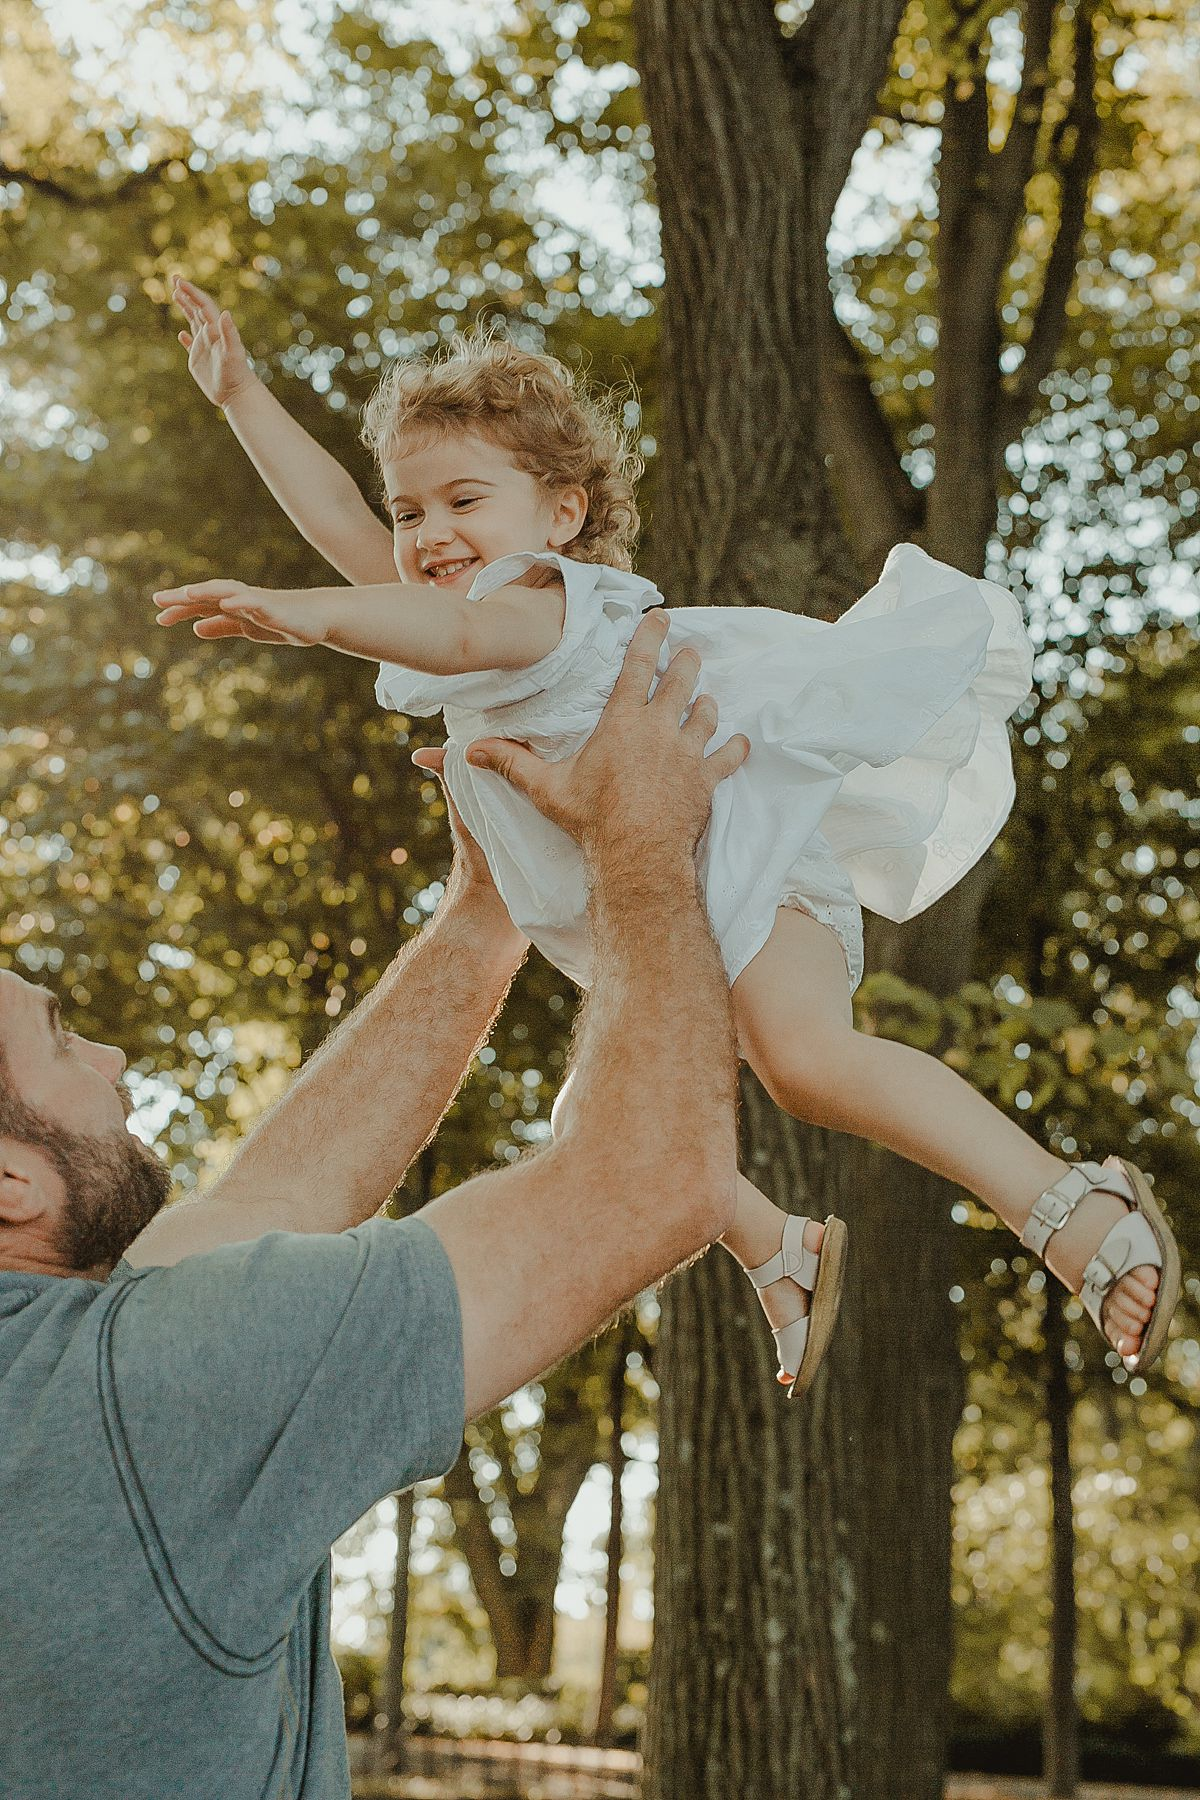 dad throws daughter in the air in fun family outdoor in nyc. photo by krystil mcdowall photography